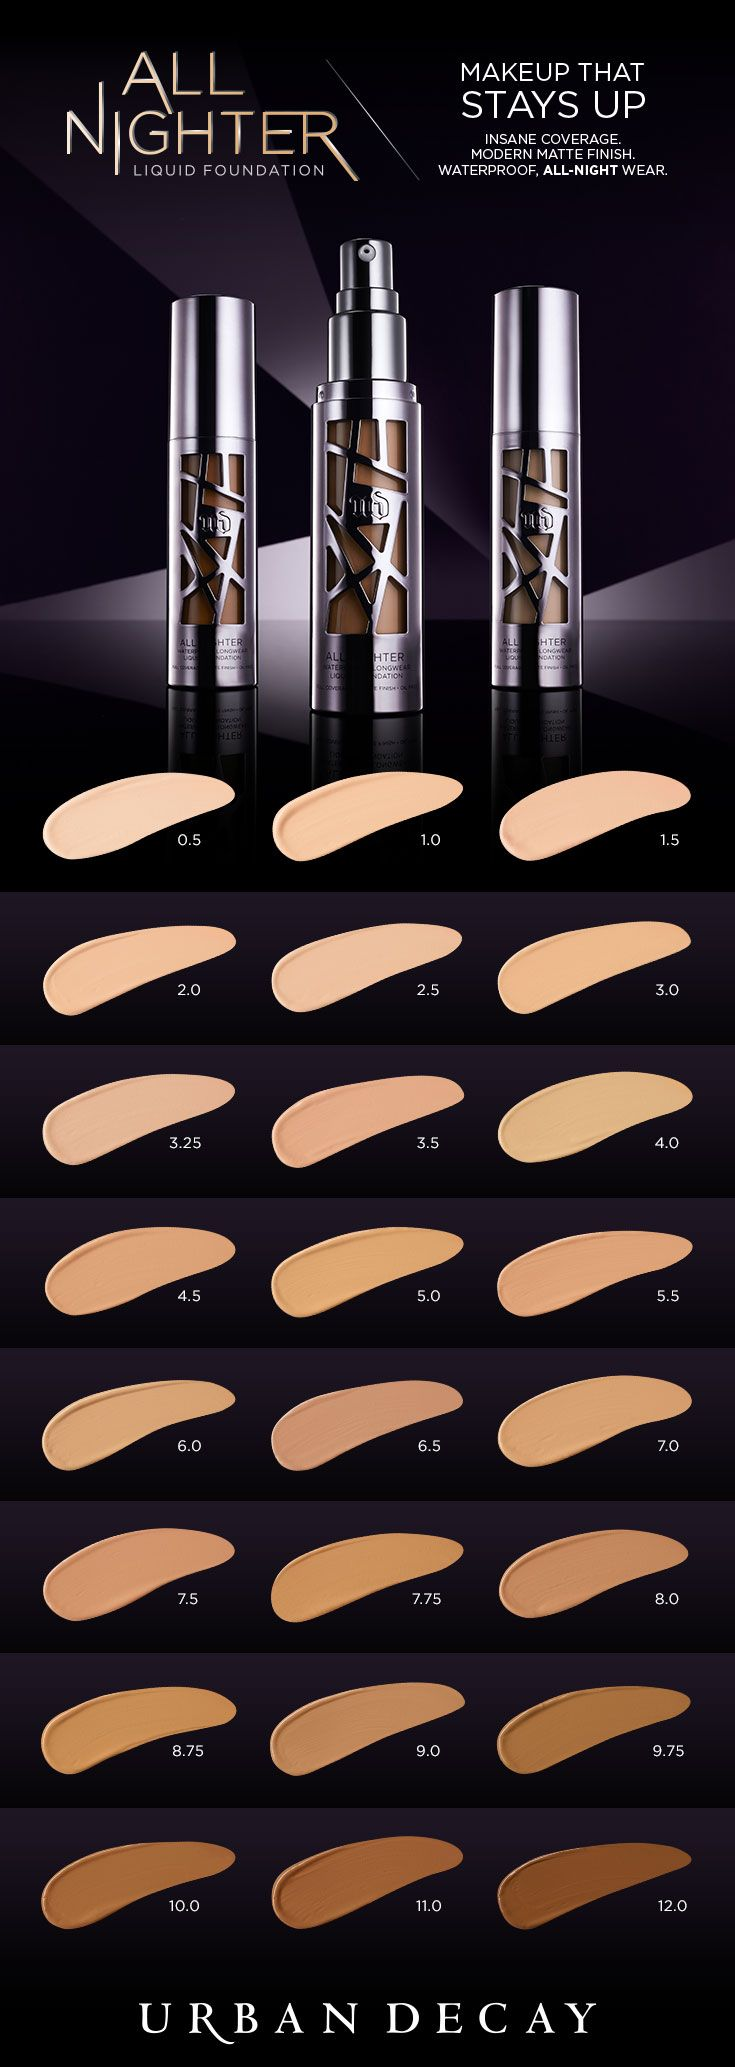 All Nighter Liquid Foundation provides full coverage with a modern matte finish that never looks overdone. Get serious long-lasting wear and a blown-out effect you never thought was possible. Perfect for all-night affairs and other scandalous activities, our revolutionary formula is also comfortable enough to wear every day. #UDAllNighter #UrbanDecay